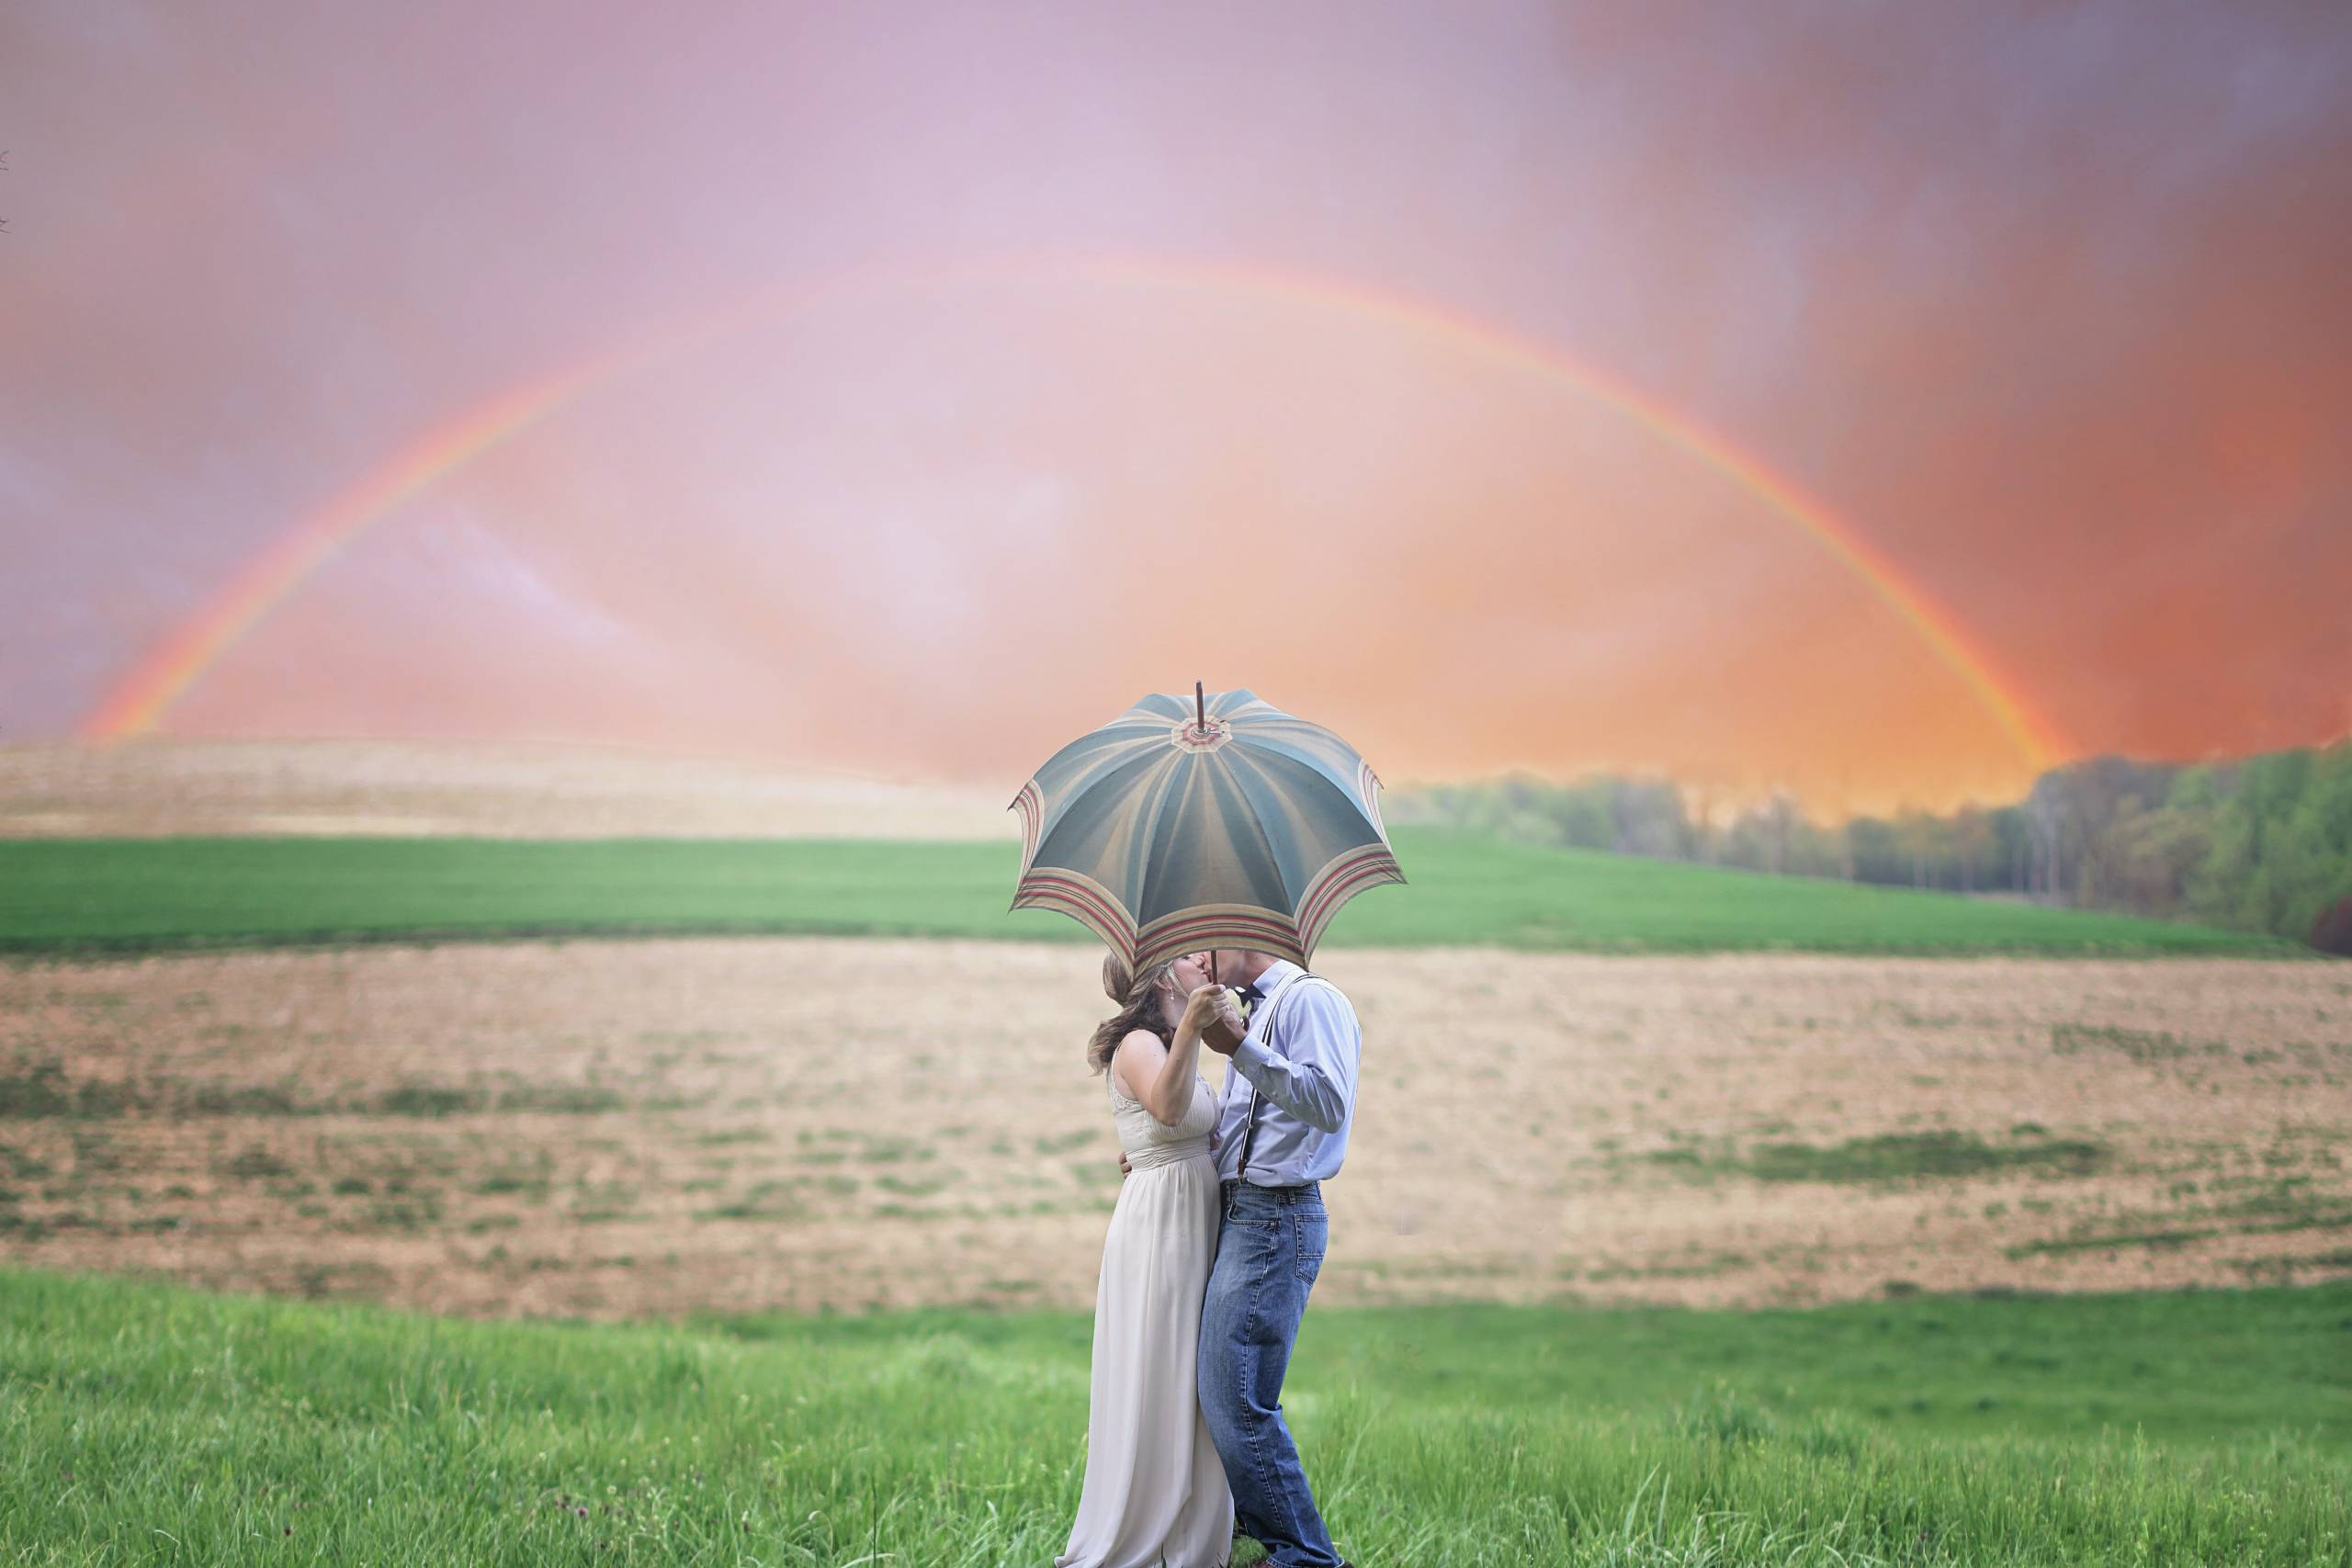 If You Want To see The Rainbow, You Must Endure the Rain.